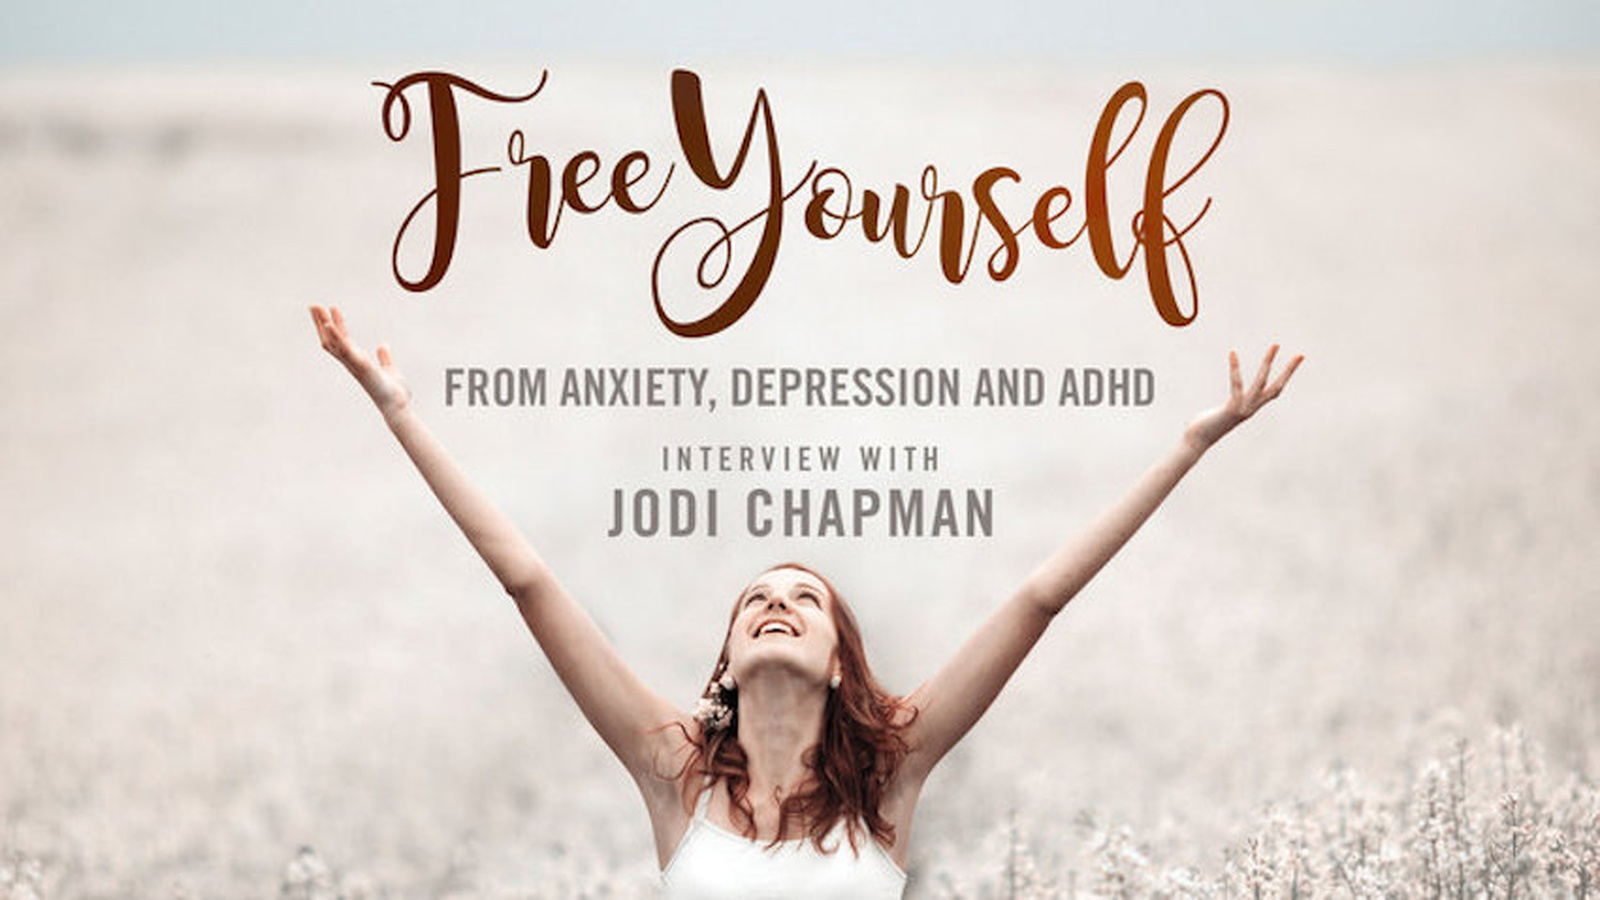 Free Yourself From Depression, Anxiety and ADHD